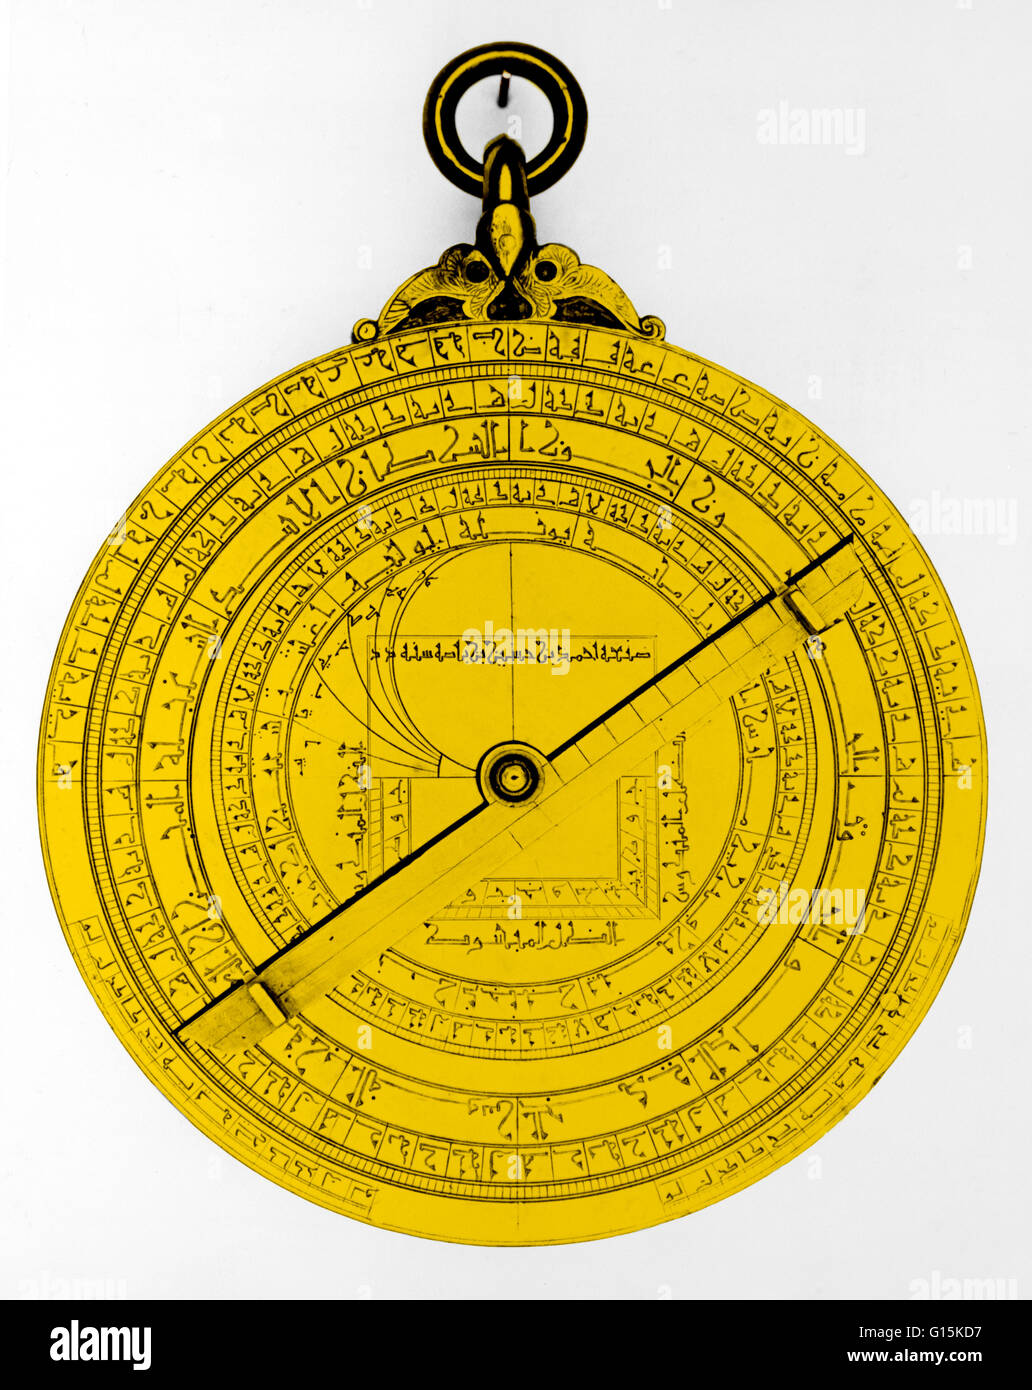 Astrolabes stock photos astrolabes stock images alamy an illustration of a 15th century arabic astrolabe the astrolabe serves many functions including nvjuhfo Image collections